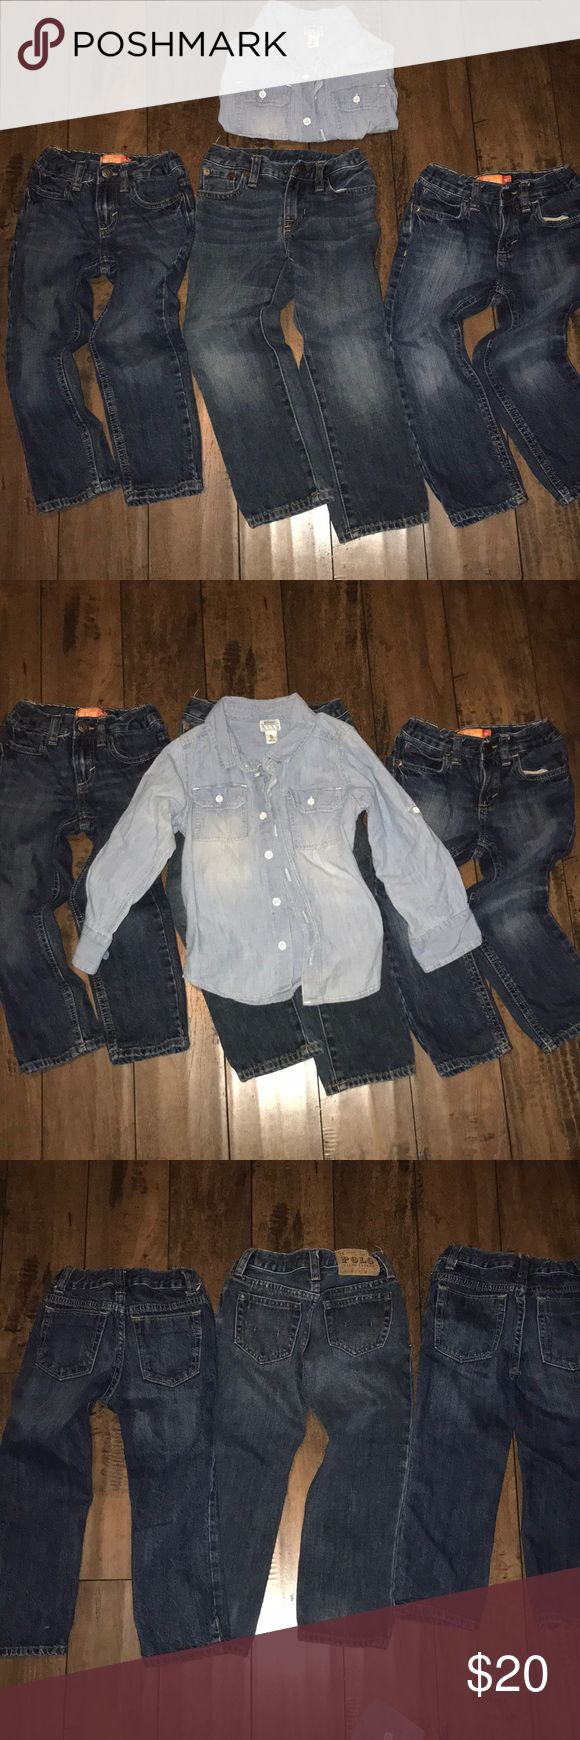 Boys Jeans & shirt 2 pair old navy size 4t adjustable. 1 pair pol (4t) 1 denim old navy shirt 5t. Perfect condition. Bundle. No stains. No rips. No tears. Non smoking. Old Navy Bottoms Jeans